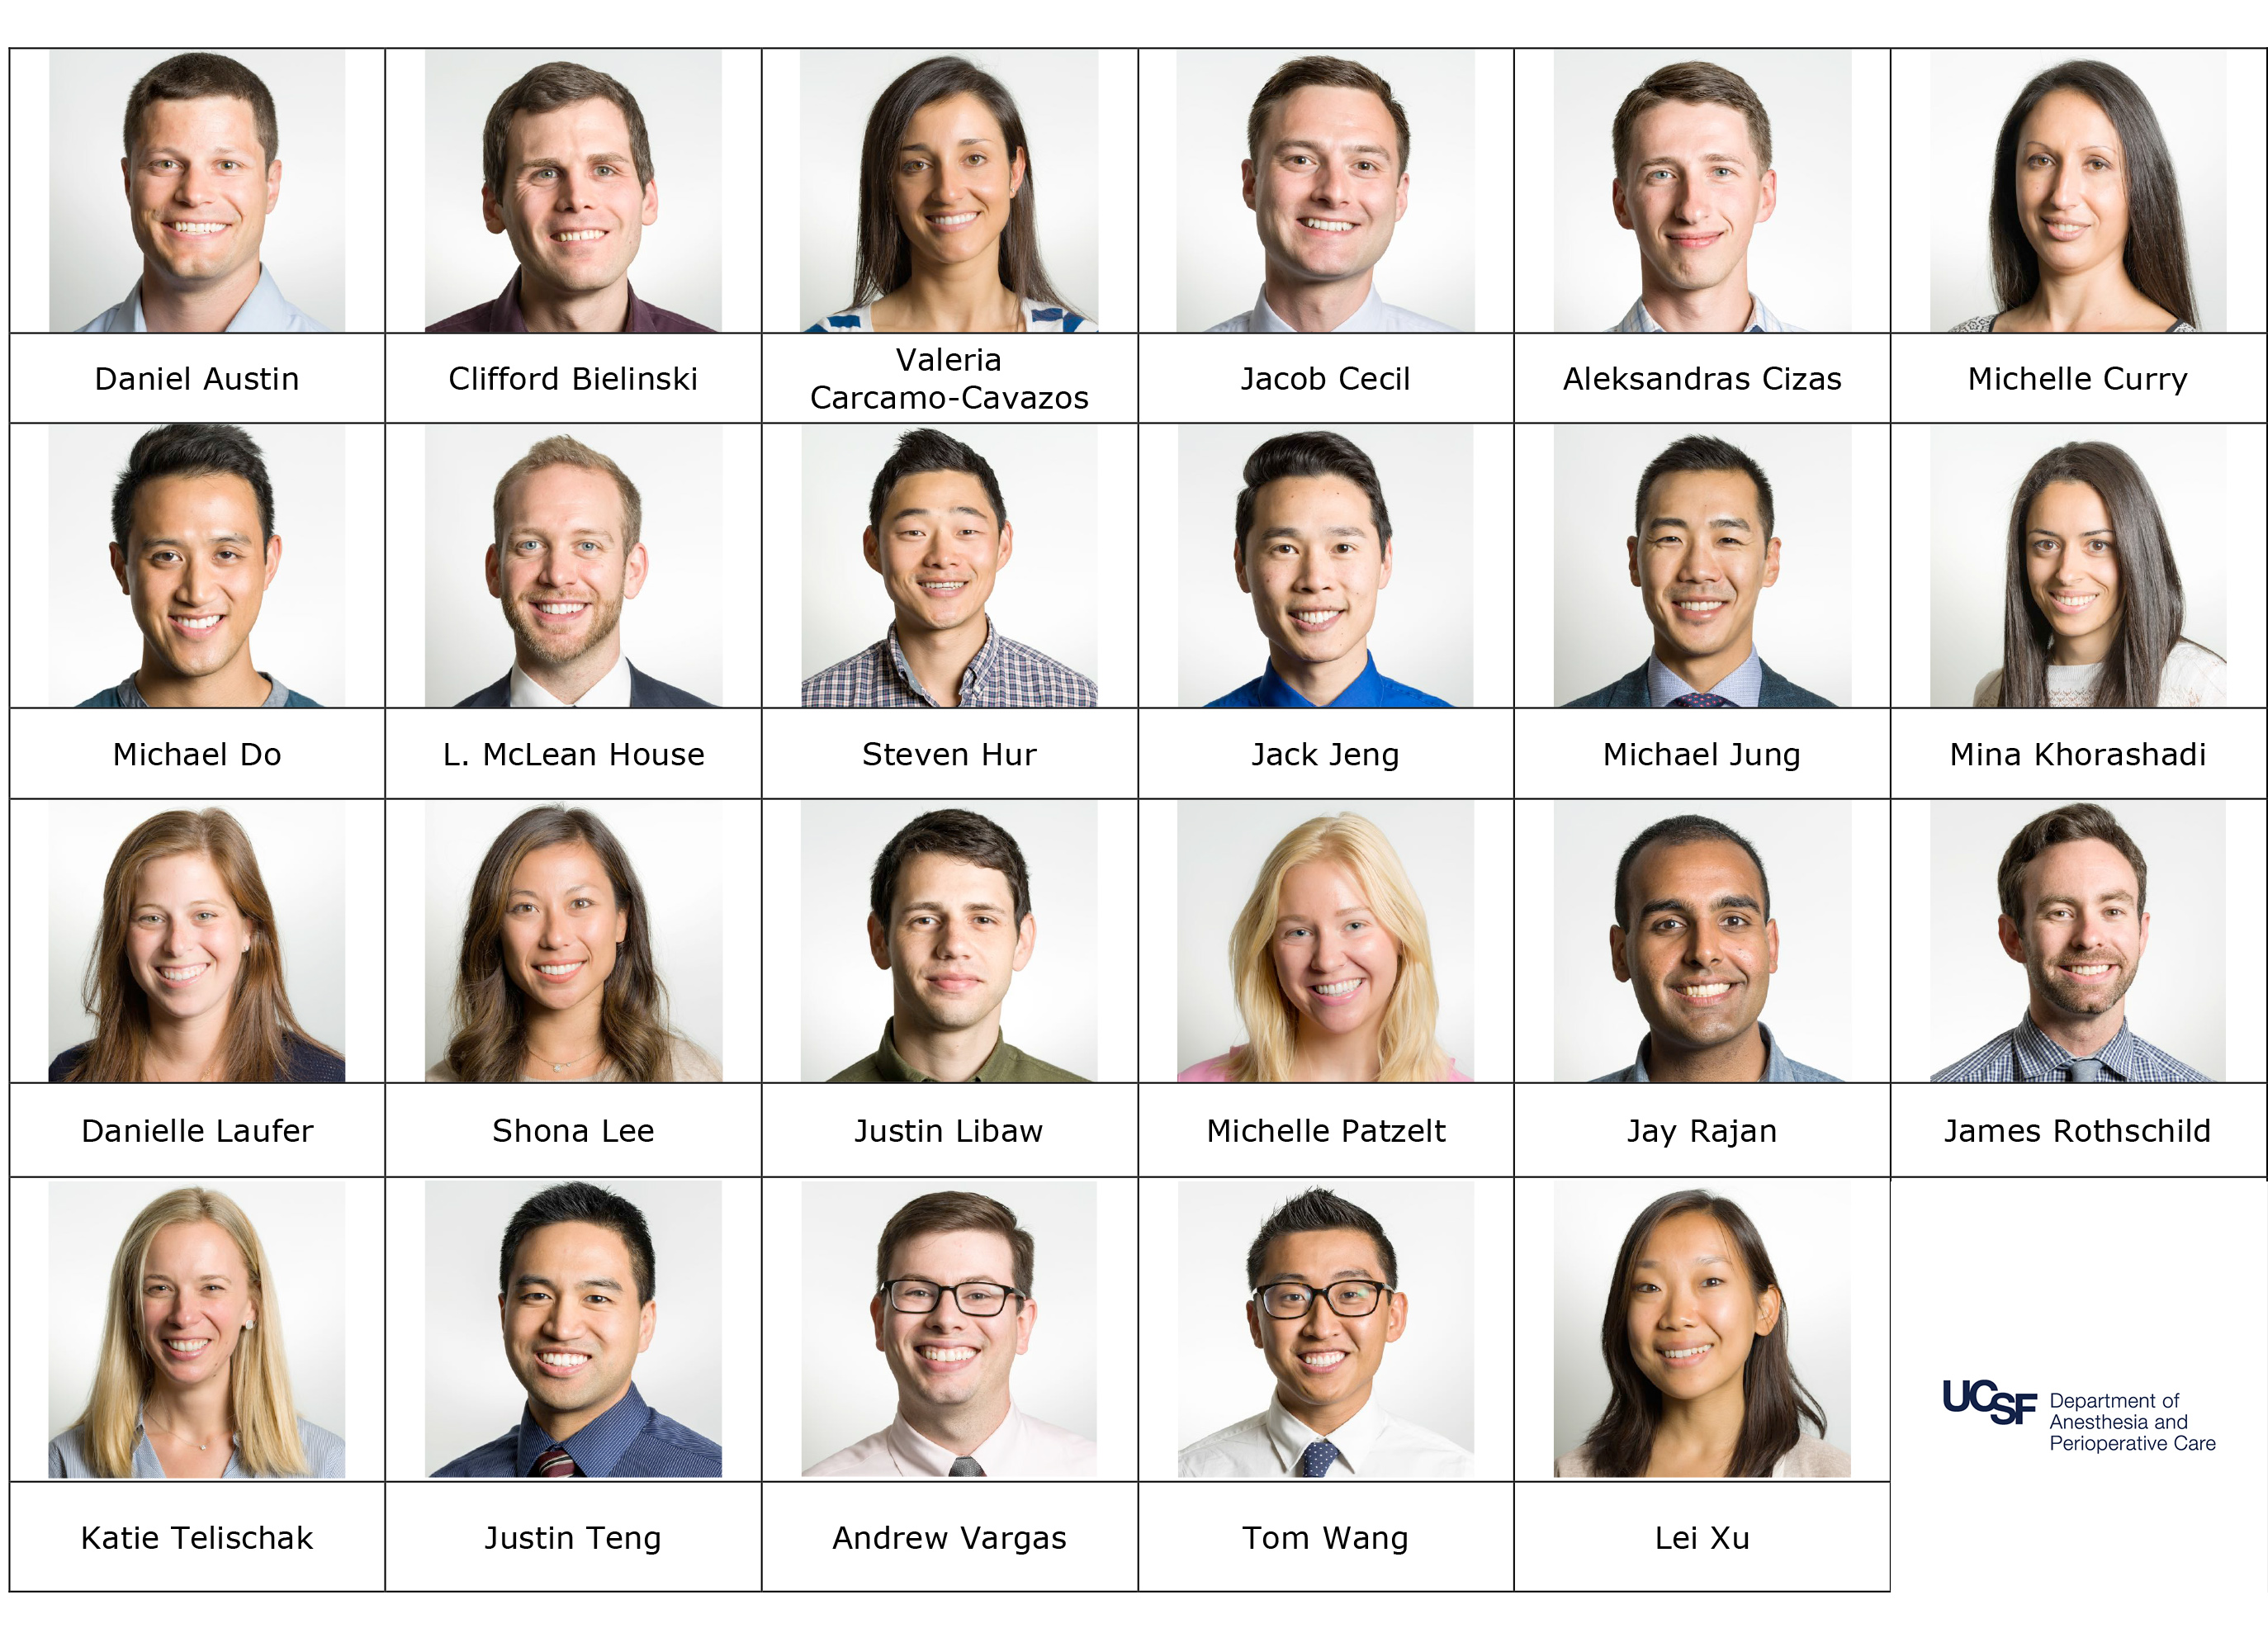 Current Residents | UCSF Dept of Anesthesia